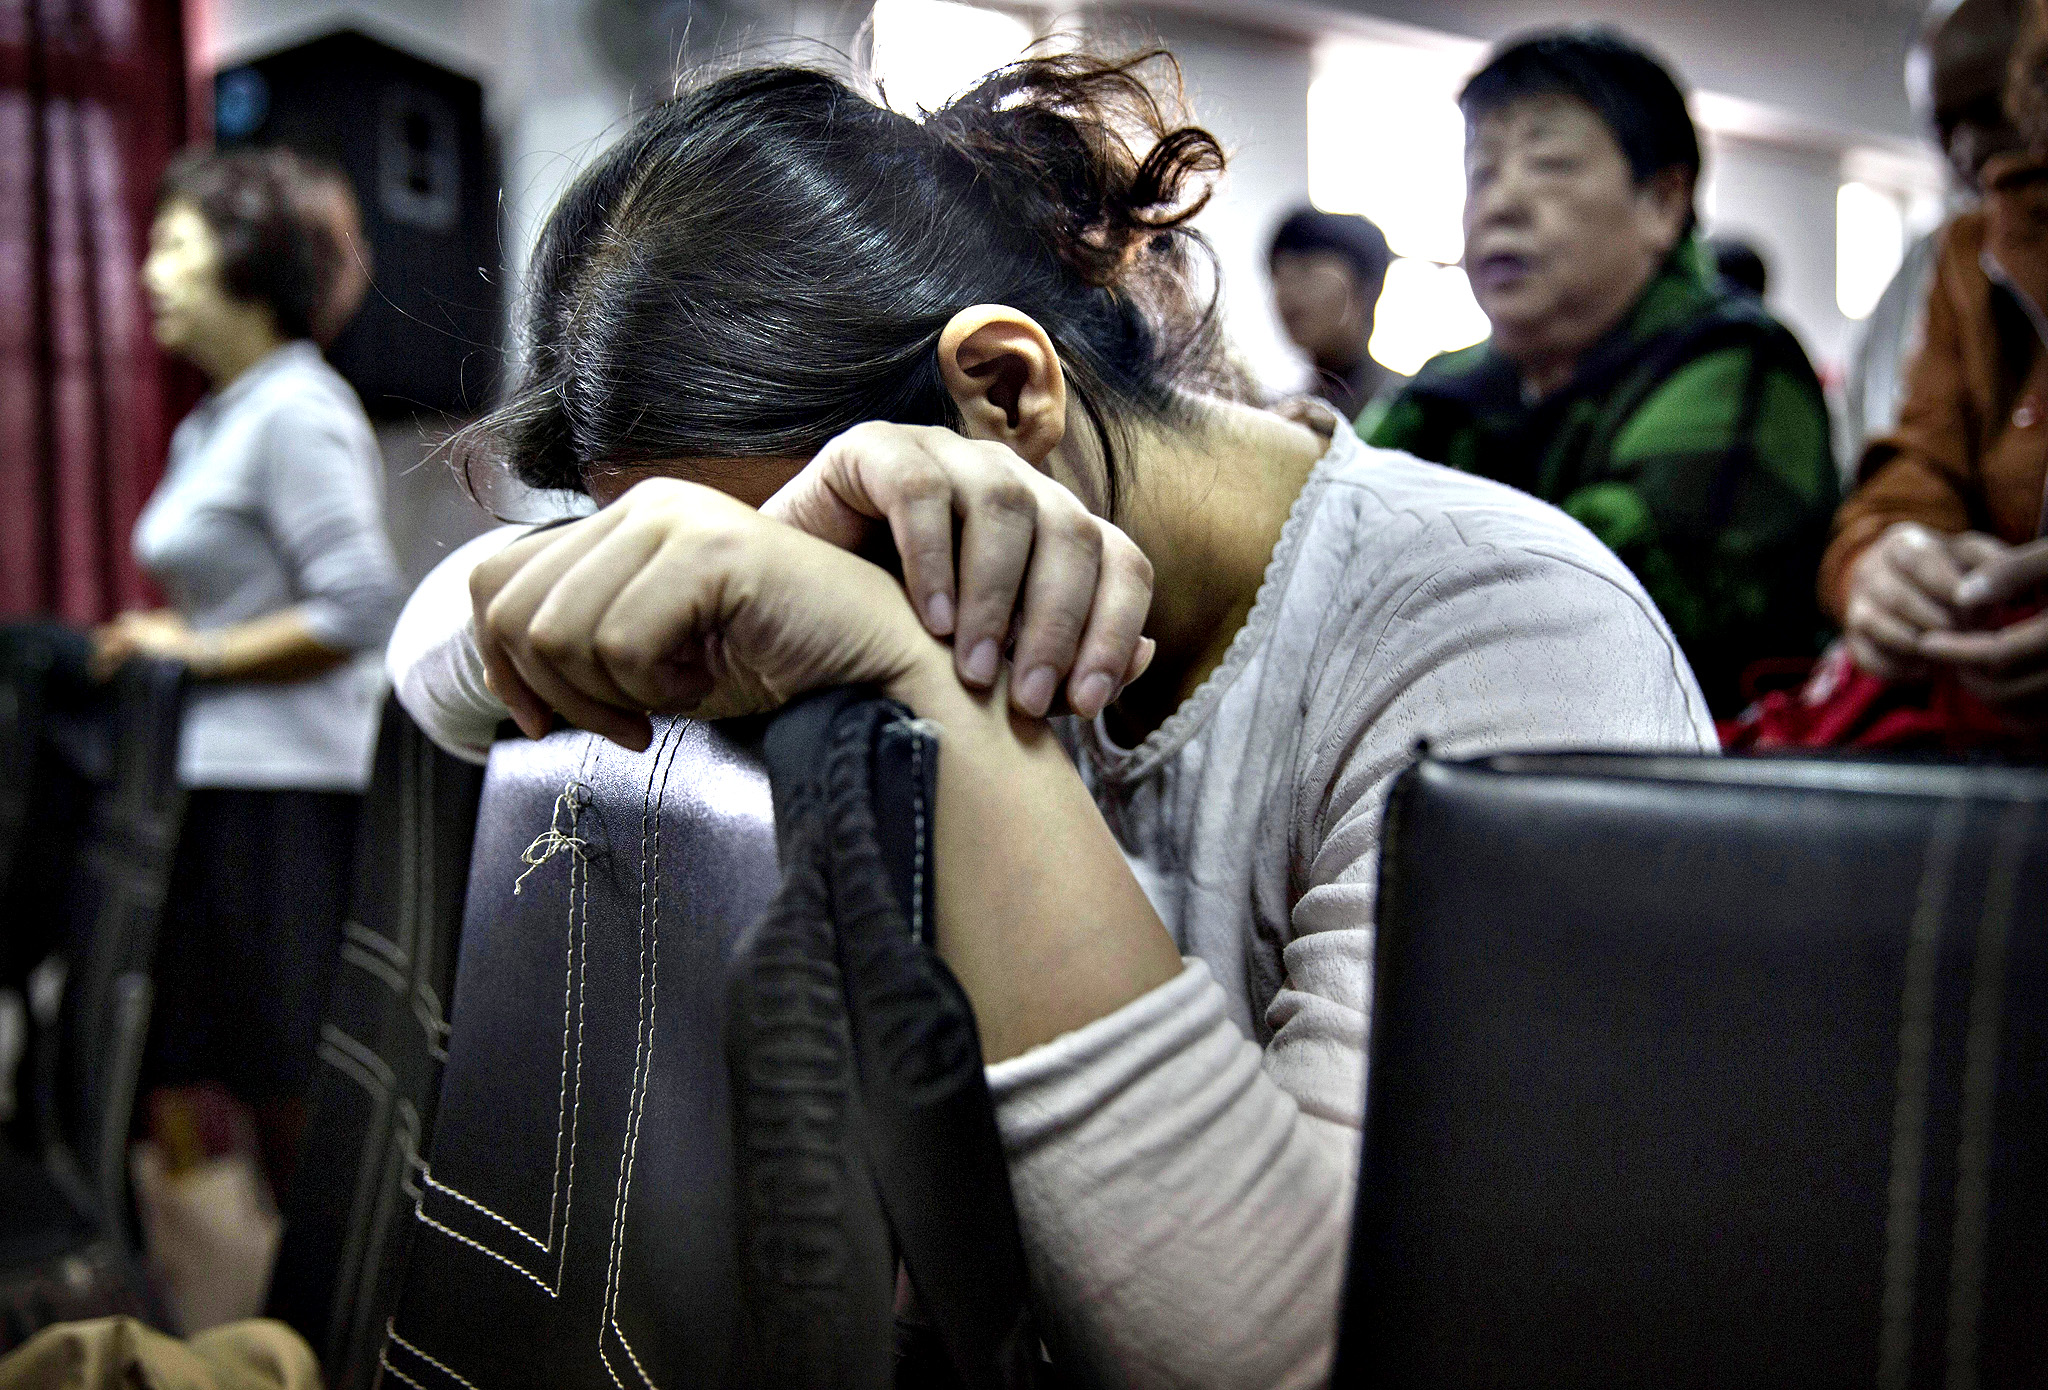 A Chinese Christian woman prays during a service at an underground independent Protestant Church in Beijing, China. China, an officially atheist country, places a number of restrictions on Christians and allows legal practice of the faith only at state-approved churches. The policy has driven an increasing number of Christians and Christian converts 'underground' to secret congregations in private homes and other venues. While the size of the religious community is difficult to measure, studies estimate there more than 65 million Christians inside China with studies supporting the possibility it could become the most Christian nation in the world within a decade.